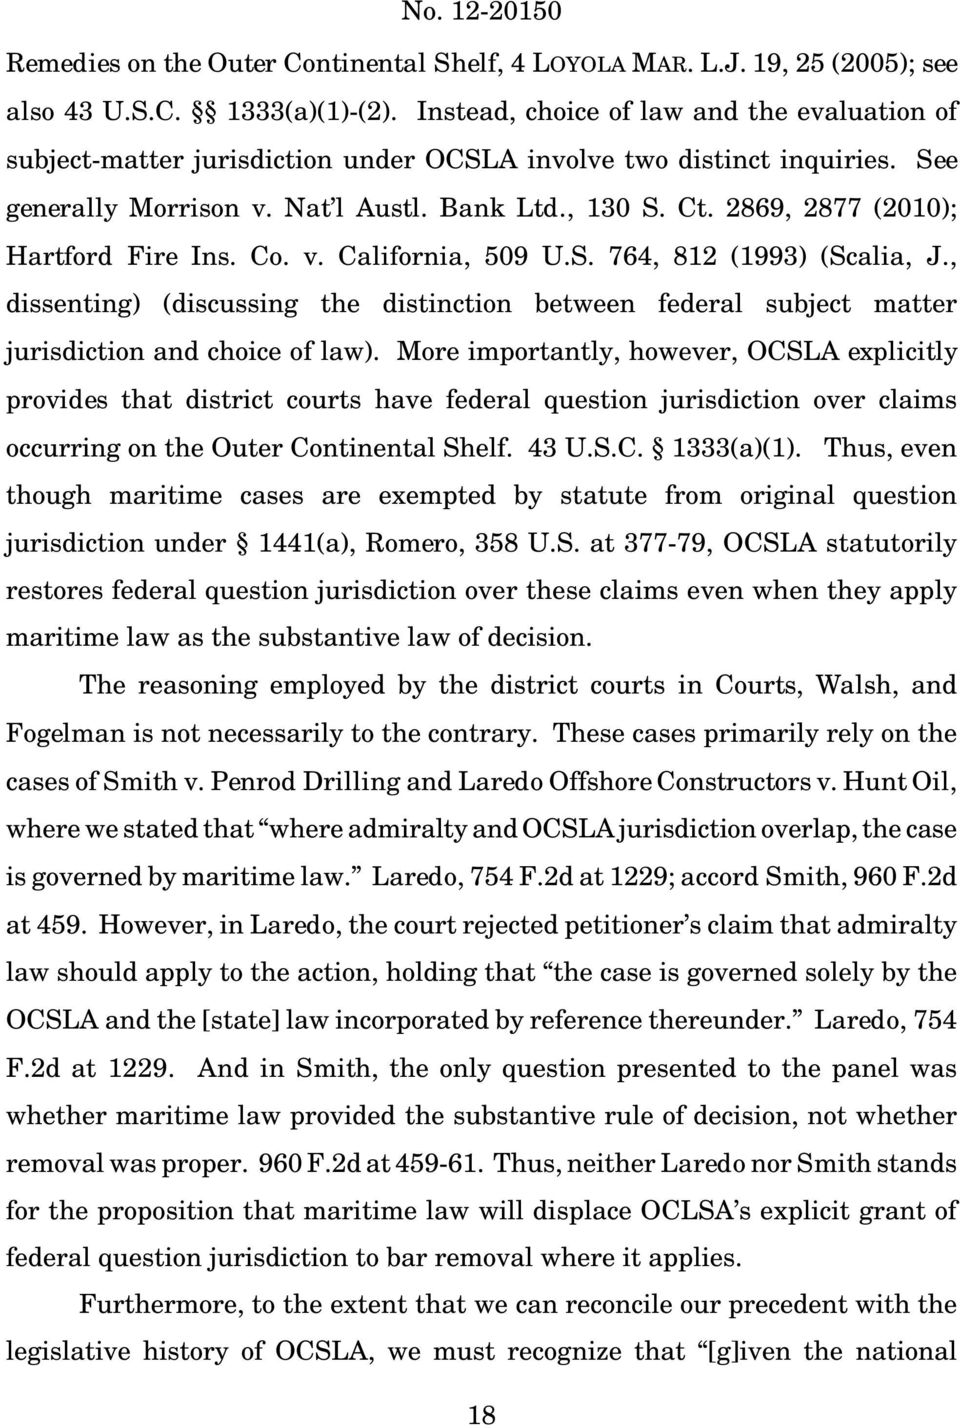 2869, 2877 (2010); Hartford Fire Ins. Co. v. California, 509 U.S. 764, 812 (1993) (Scalia, J., dissenting) (discussing the distinction between federal subject matter jurisdiction and choice of law).